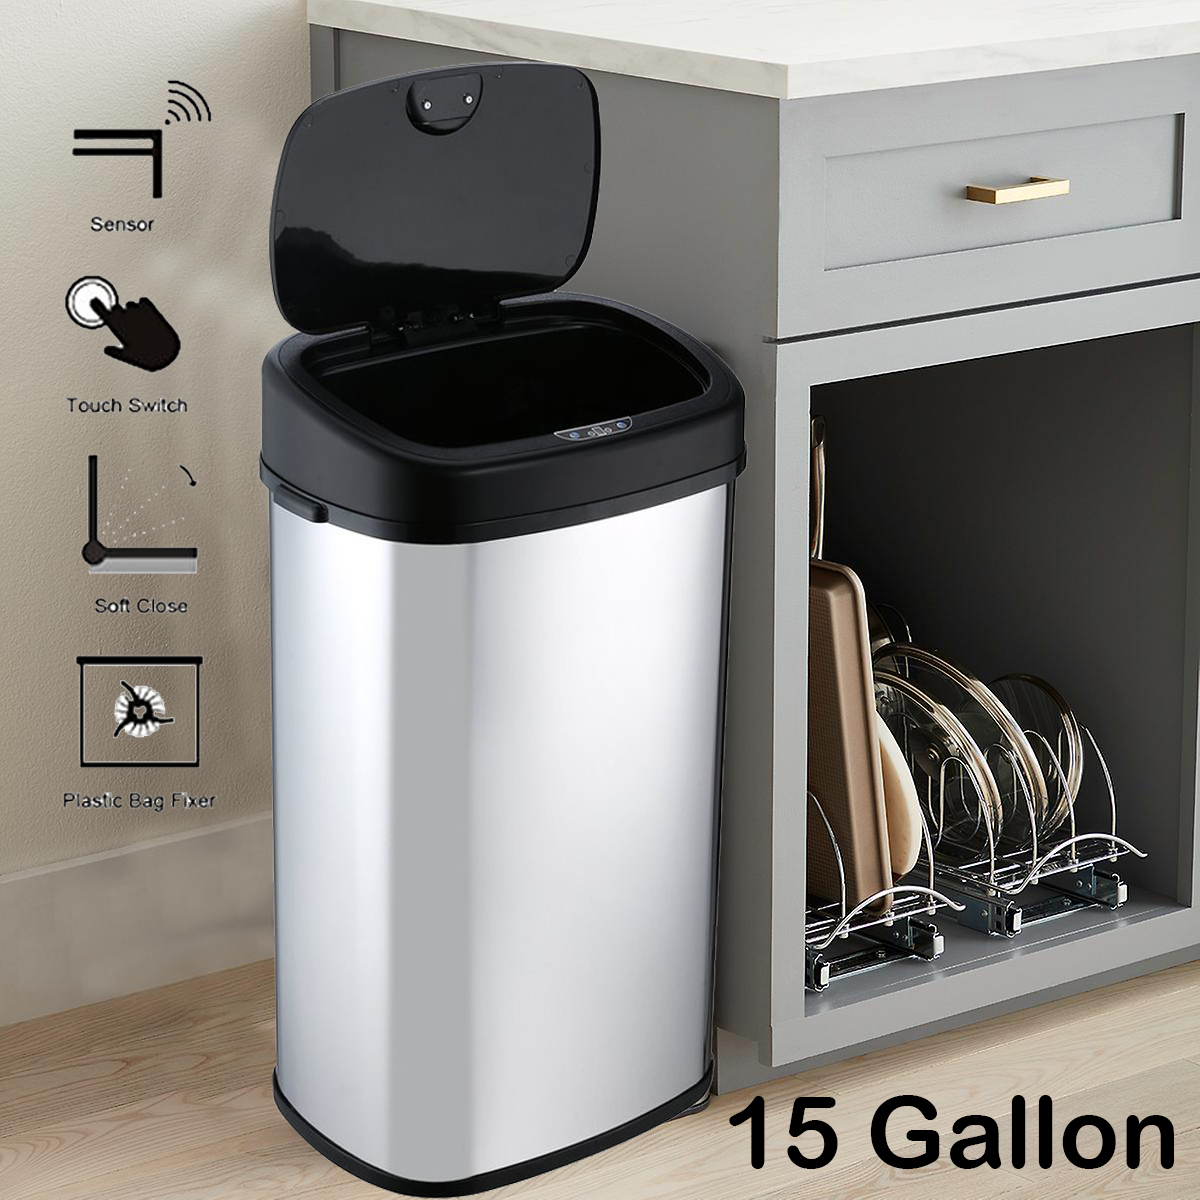 Details about Trash Cans For Kitchen Garbage Can W/ Lid Automatic Touchless  Slim Motion MY